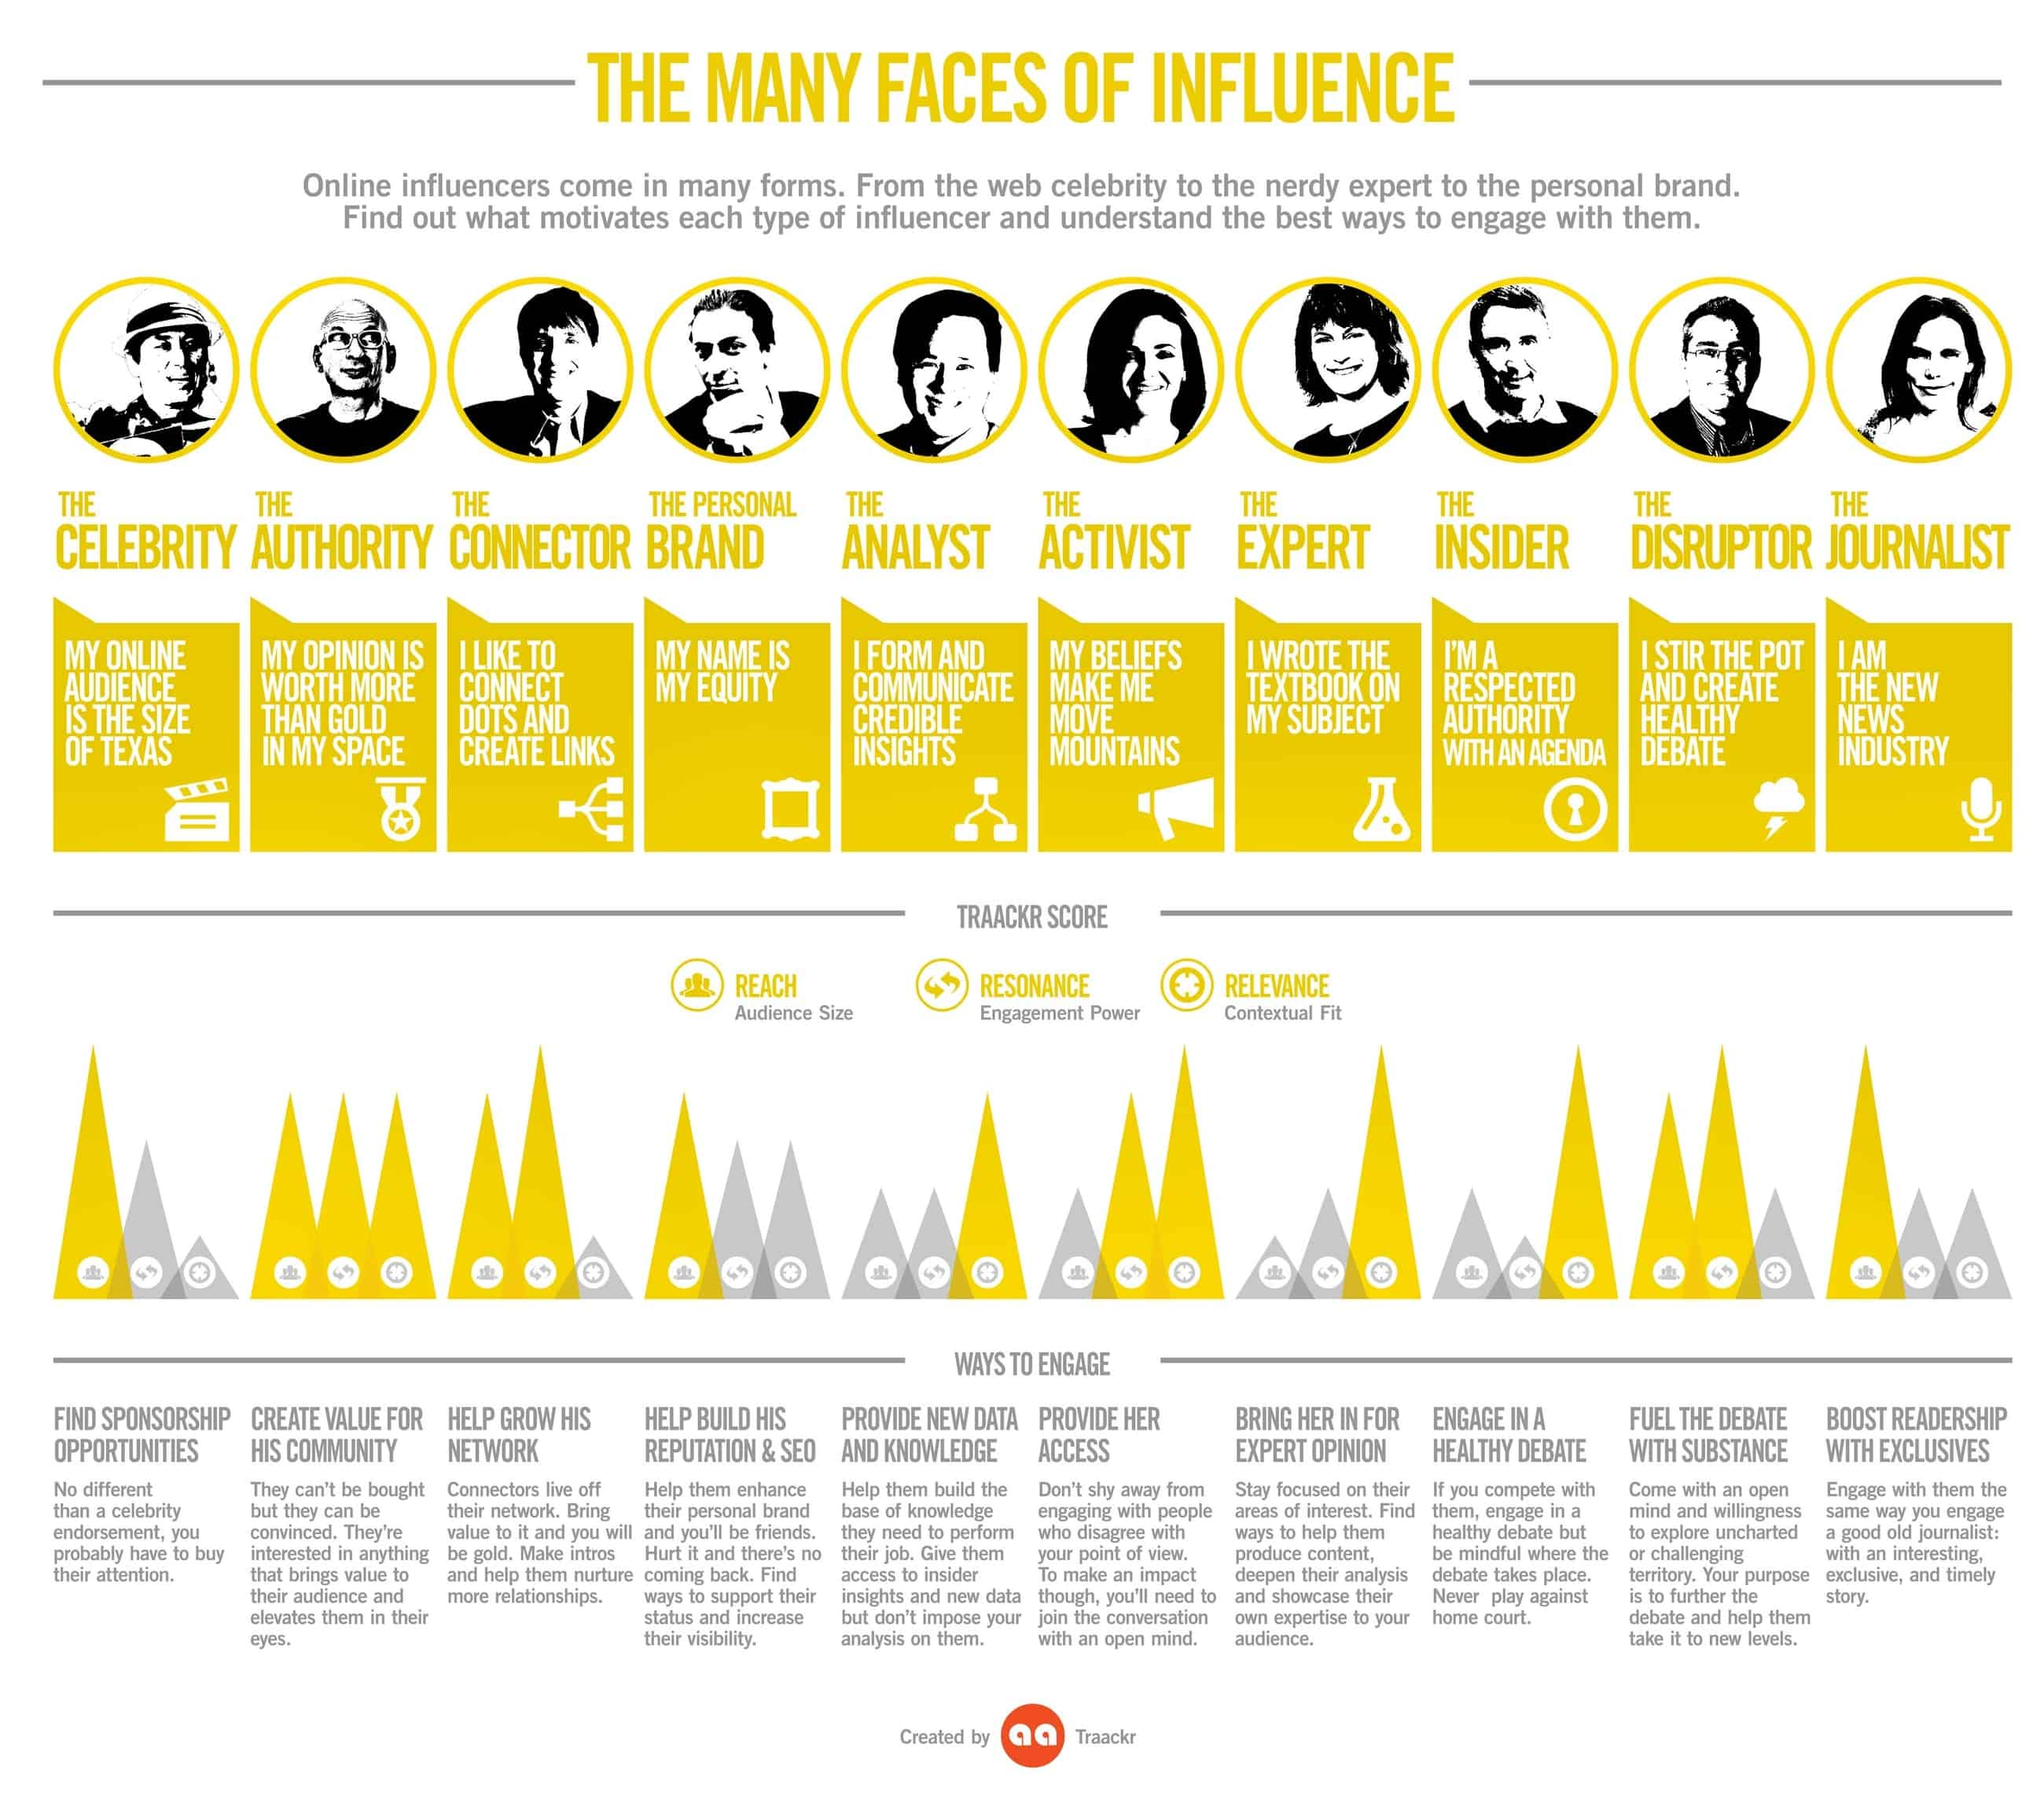 The-Many-Faces-of-Influence Image